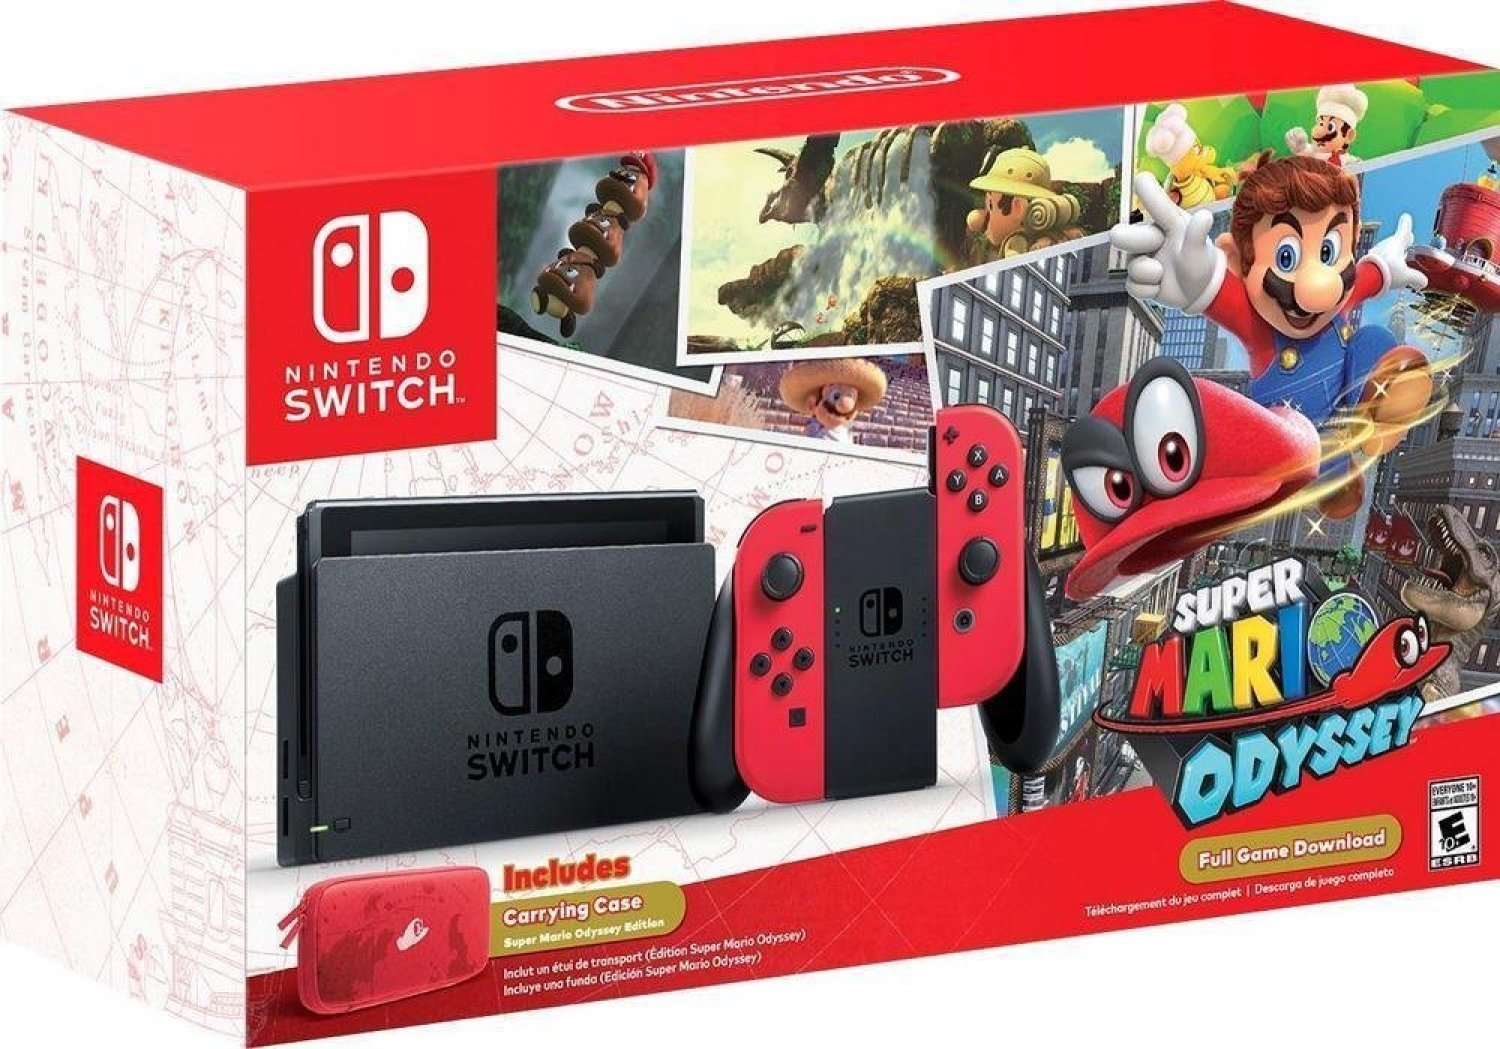 Bigwords Com Nintendo Switch Super Mario Odyssey Edition 0045496591694 Buy New And Used Video Gameses Books And More